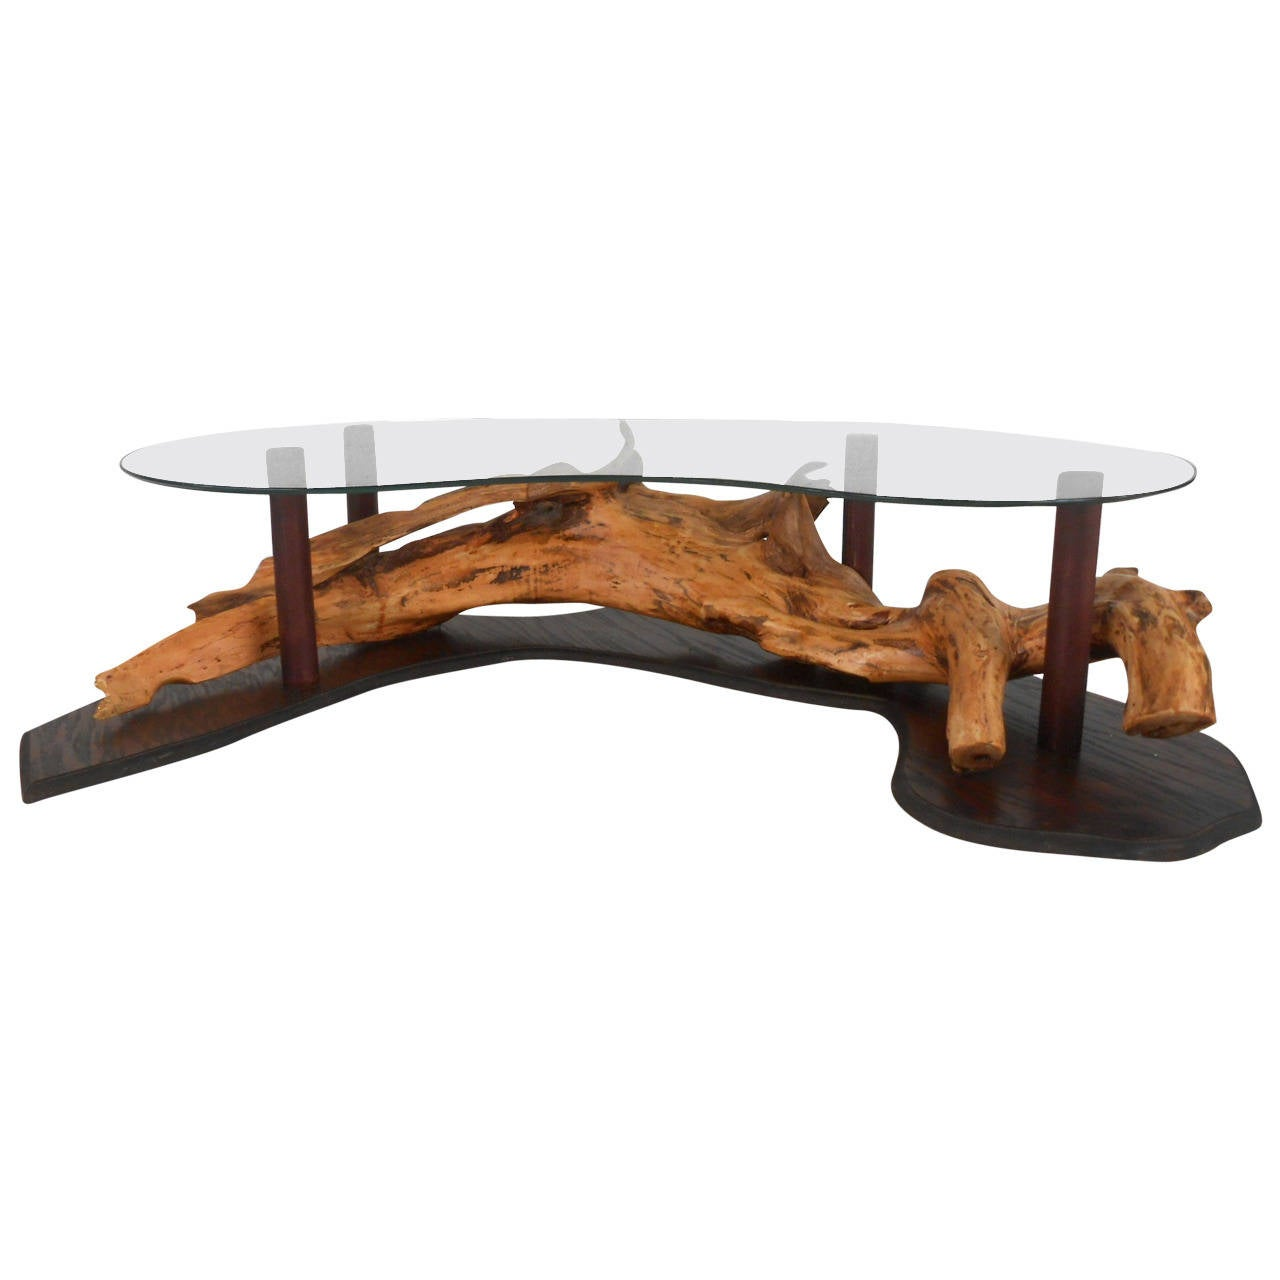 Unique Mid Century Modern Rustic Driftwood Coffee Table At 1stdibs